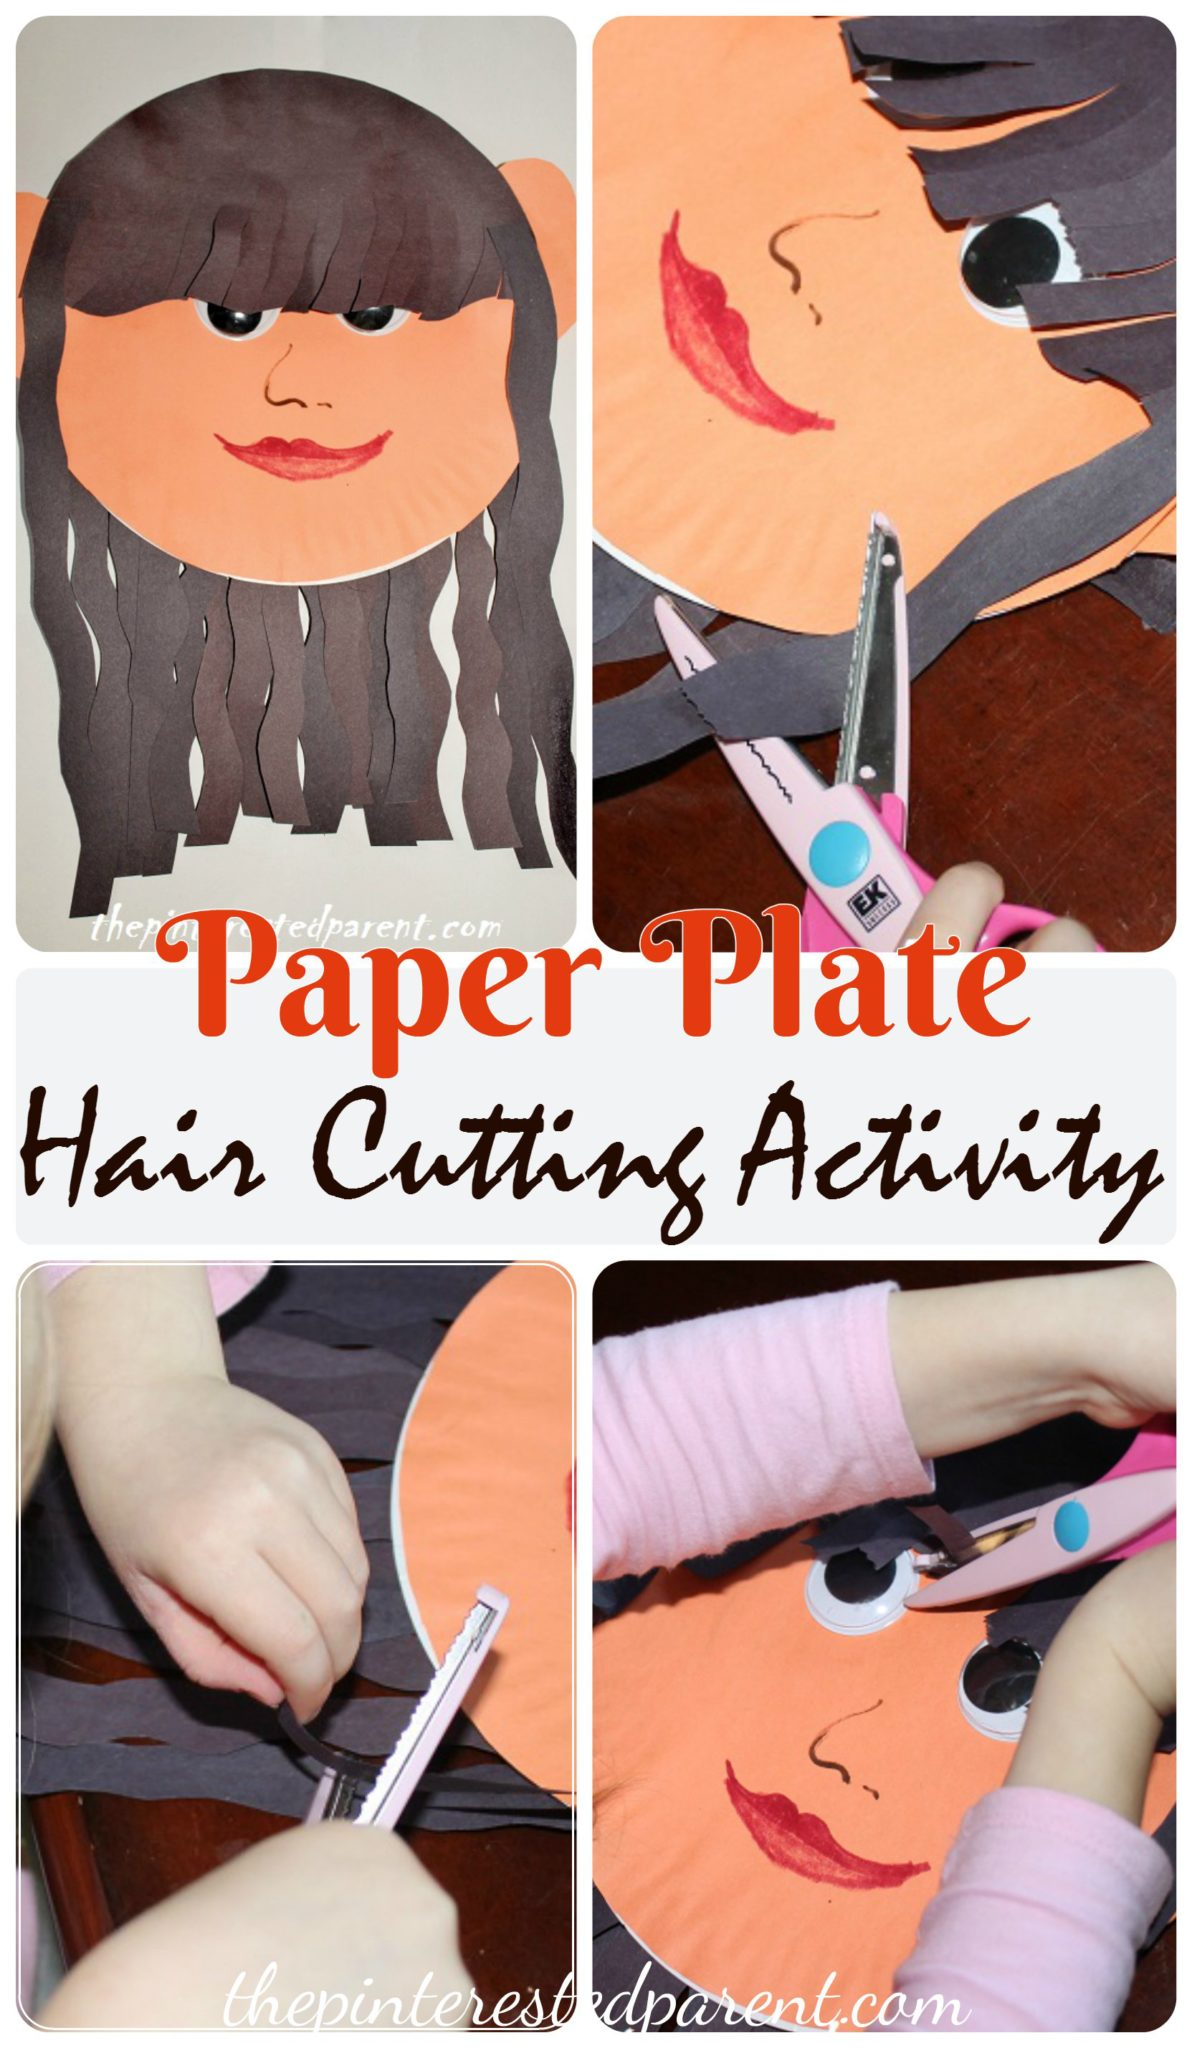 Paper Plate Hair Cutting Activity The Pinterested Parent